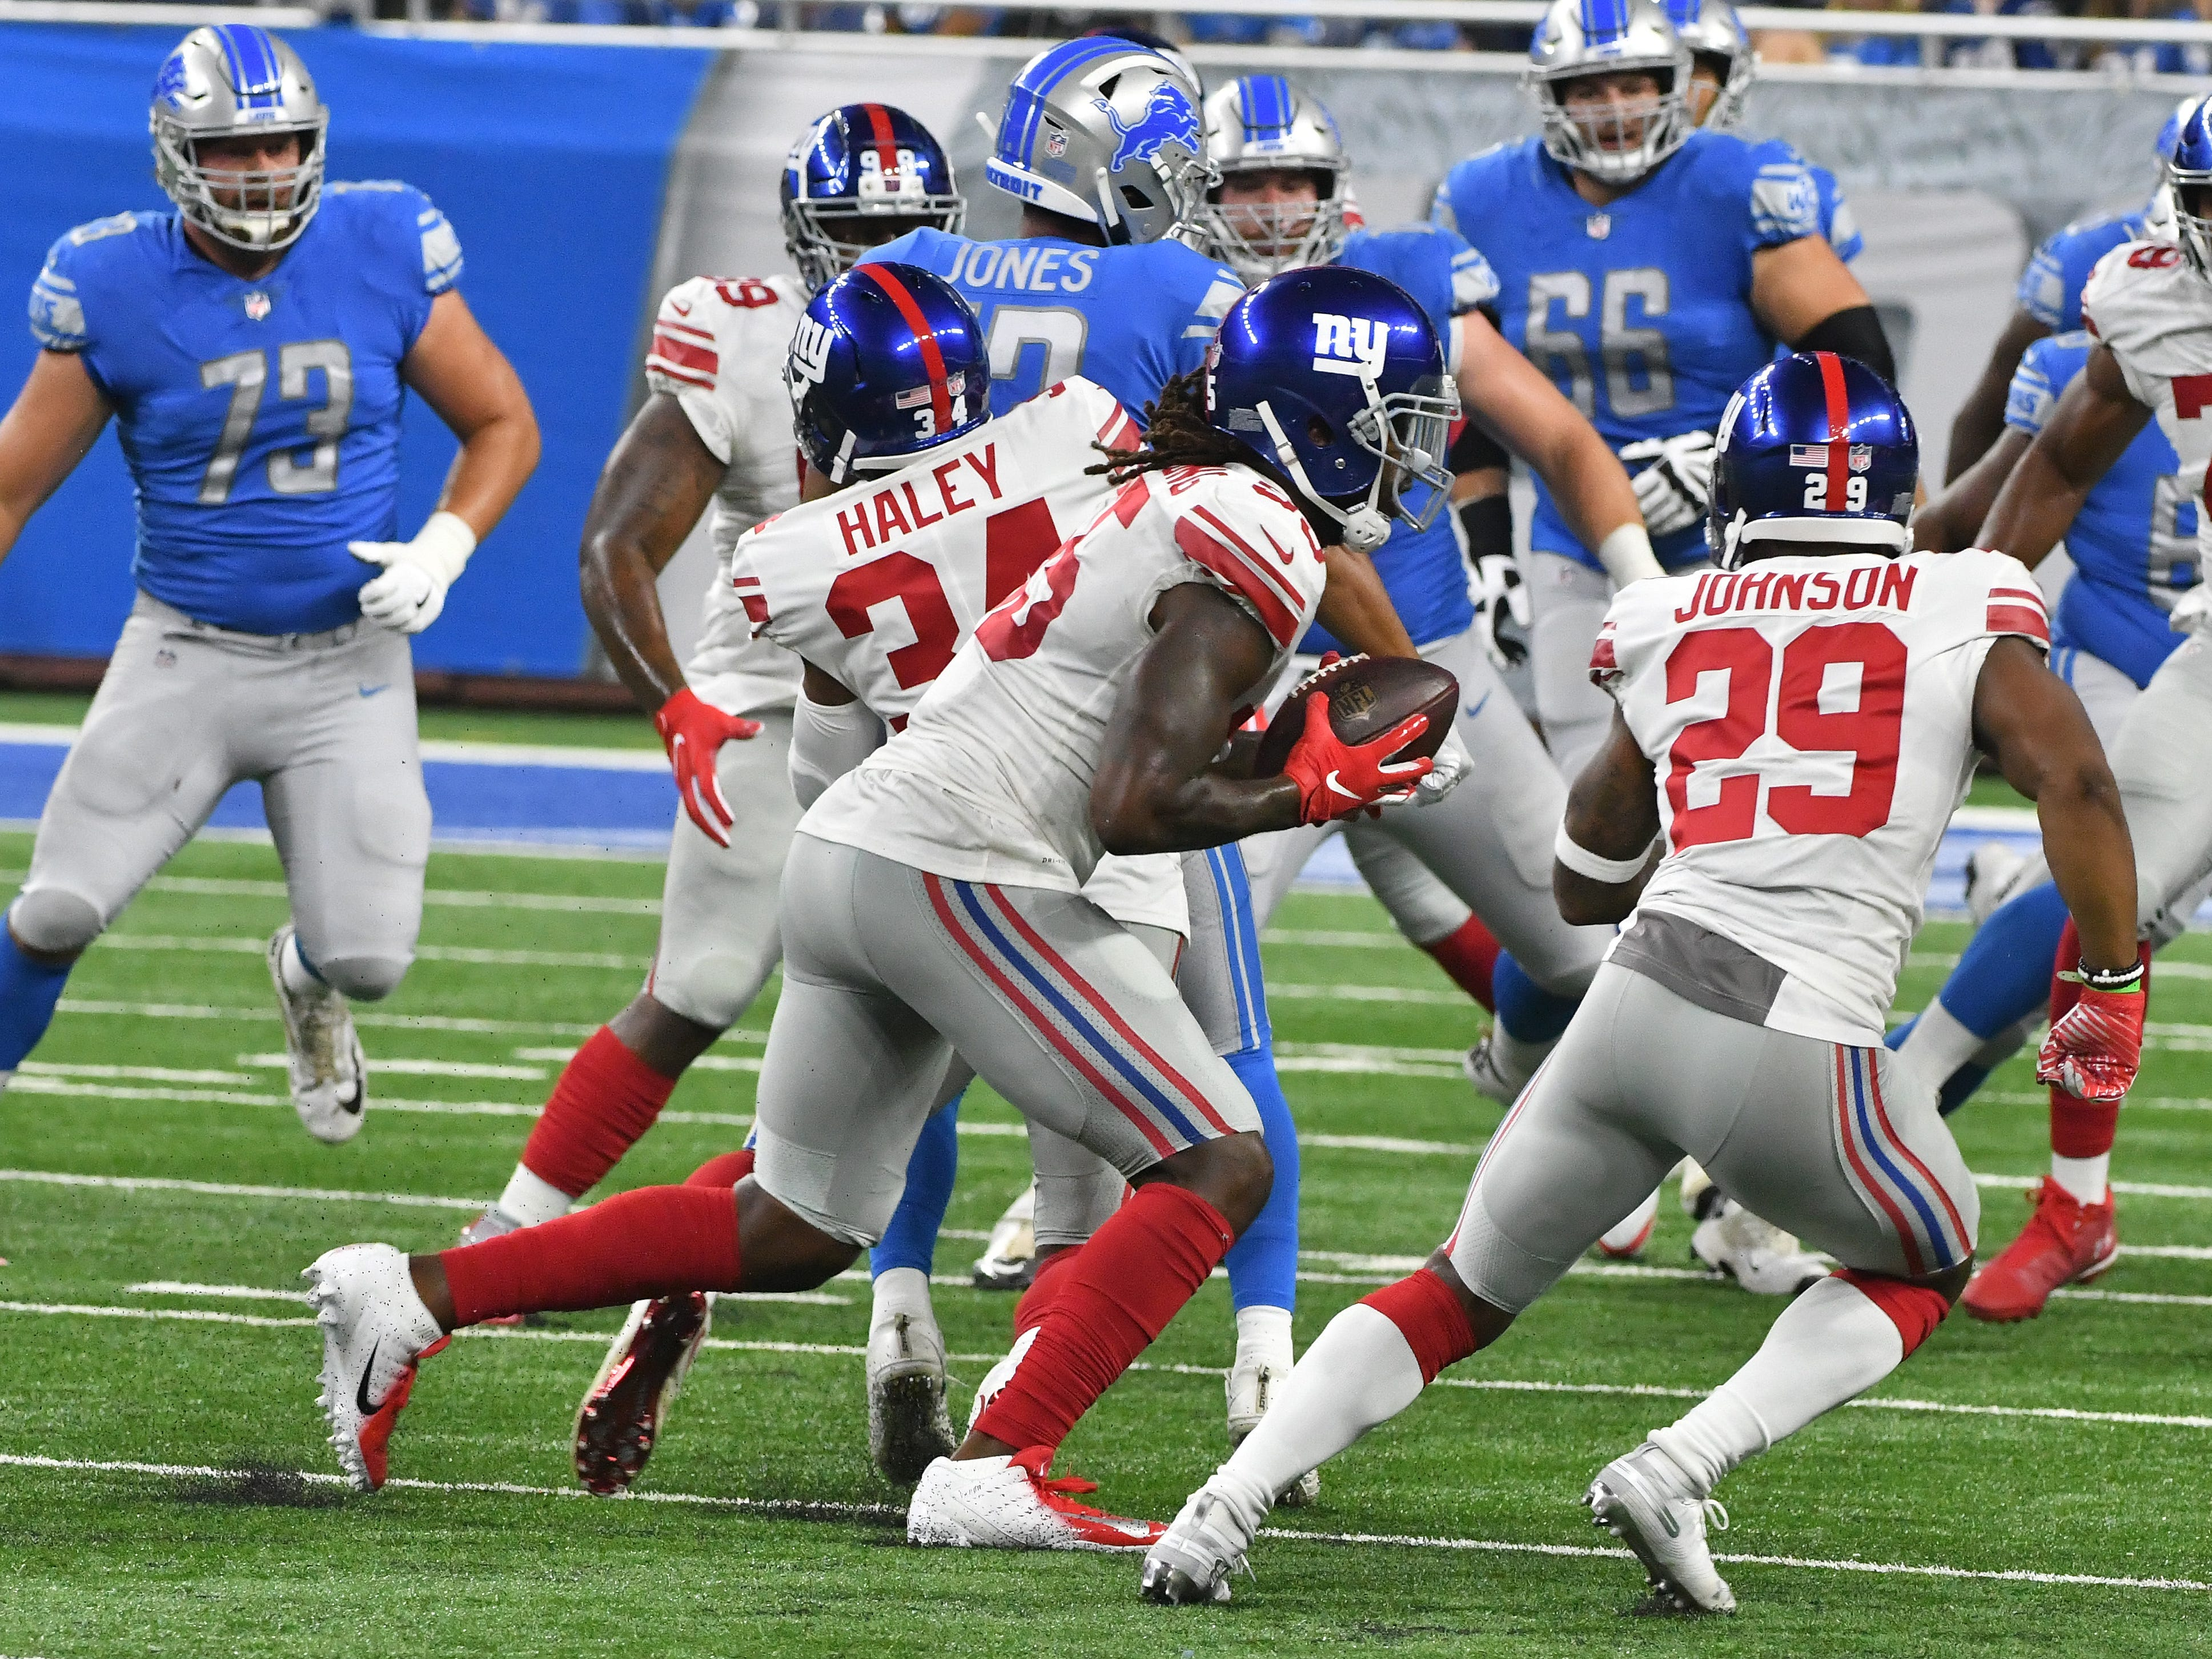 Giants' Ray-Ray Armstrong pulls in a ball that went through the hands of Lions T.J. Jones, bounced off his teammate Giants' Grant Haley and into his hands for an interception in the third quarter.